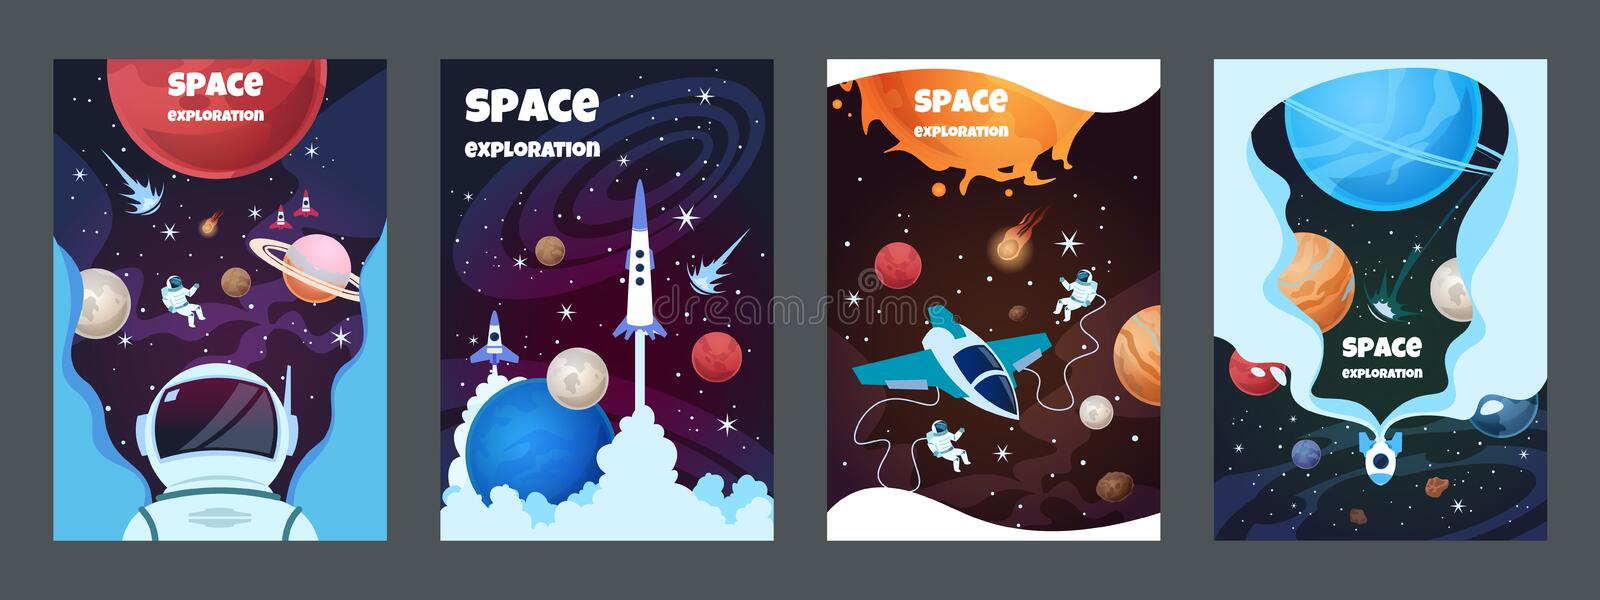 Cartoon space banners. Galaxy universe science child astronaut modern planet poster study banner. Vector brochure space stock illustration